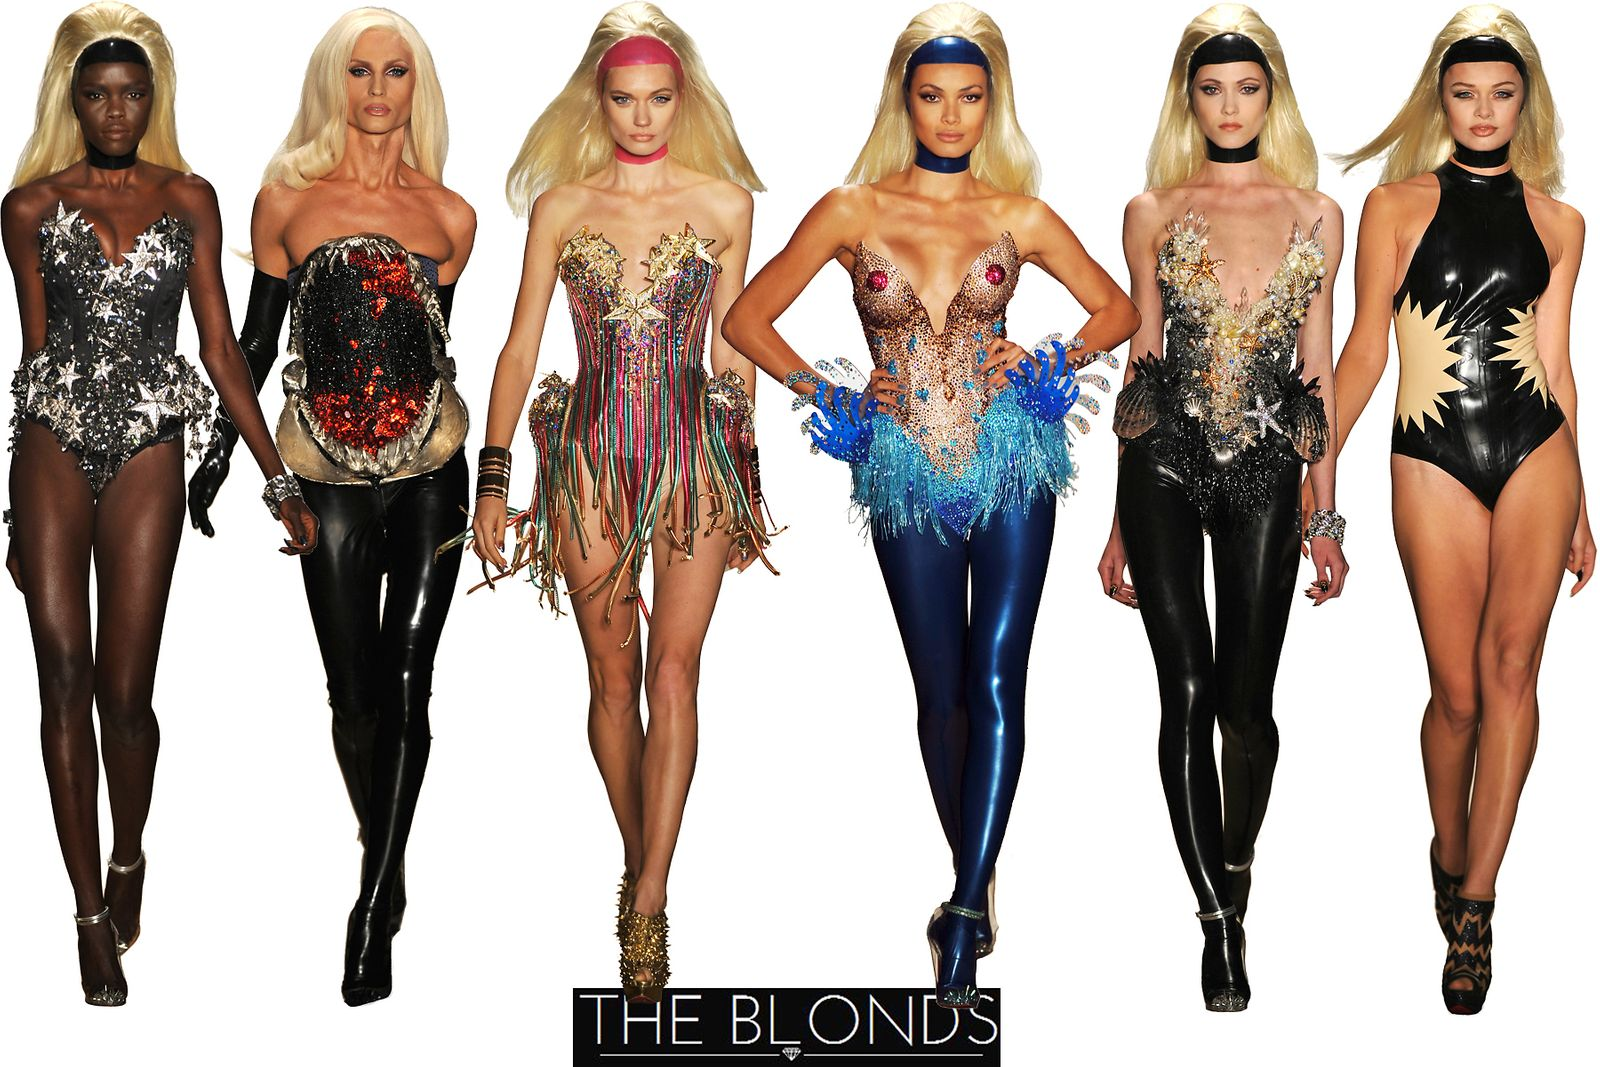 The Blonds Spring/Summer 2013 collection